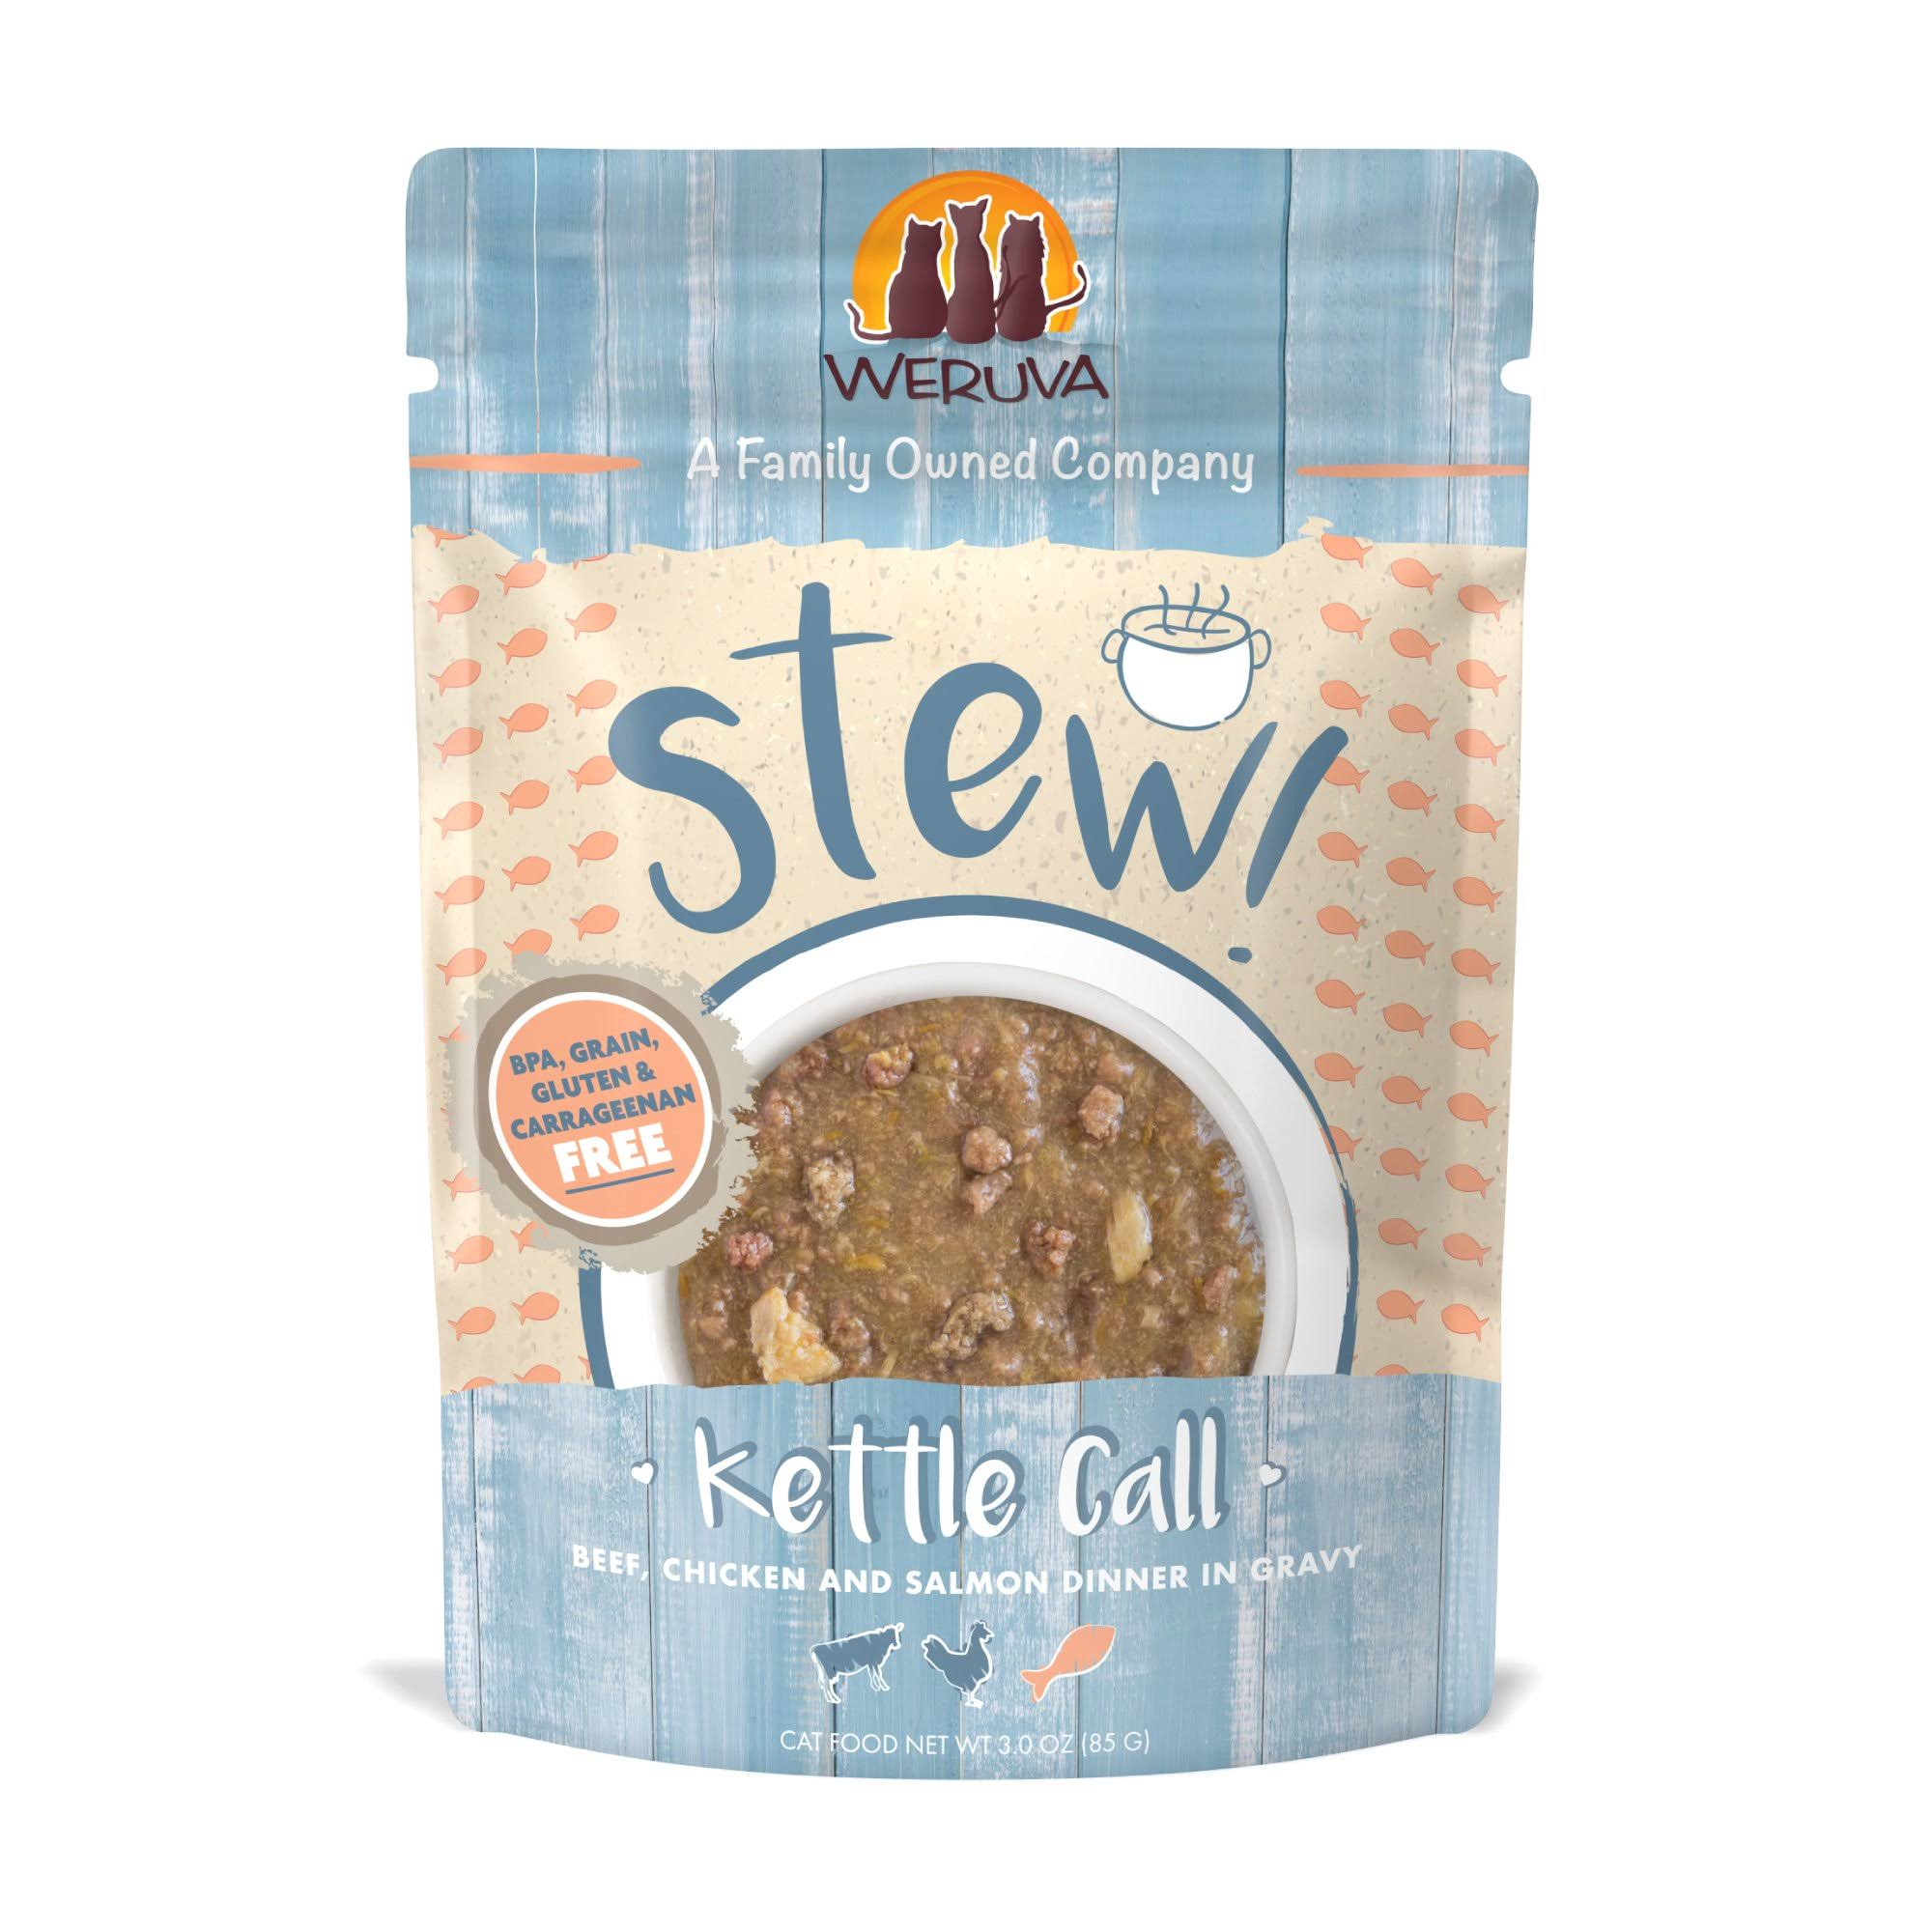 Weruva Stew! Kettle Call Beef, Chicken and Salmon Dinner in Gravy Cat Food - 3 oz